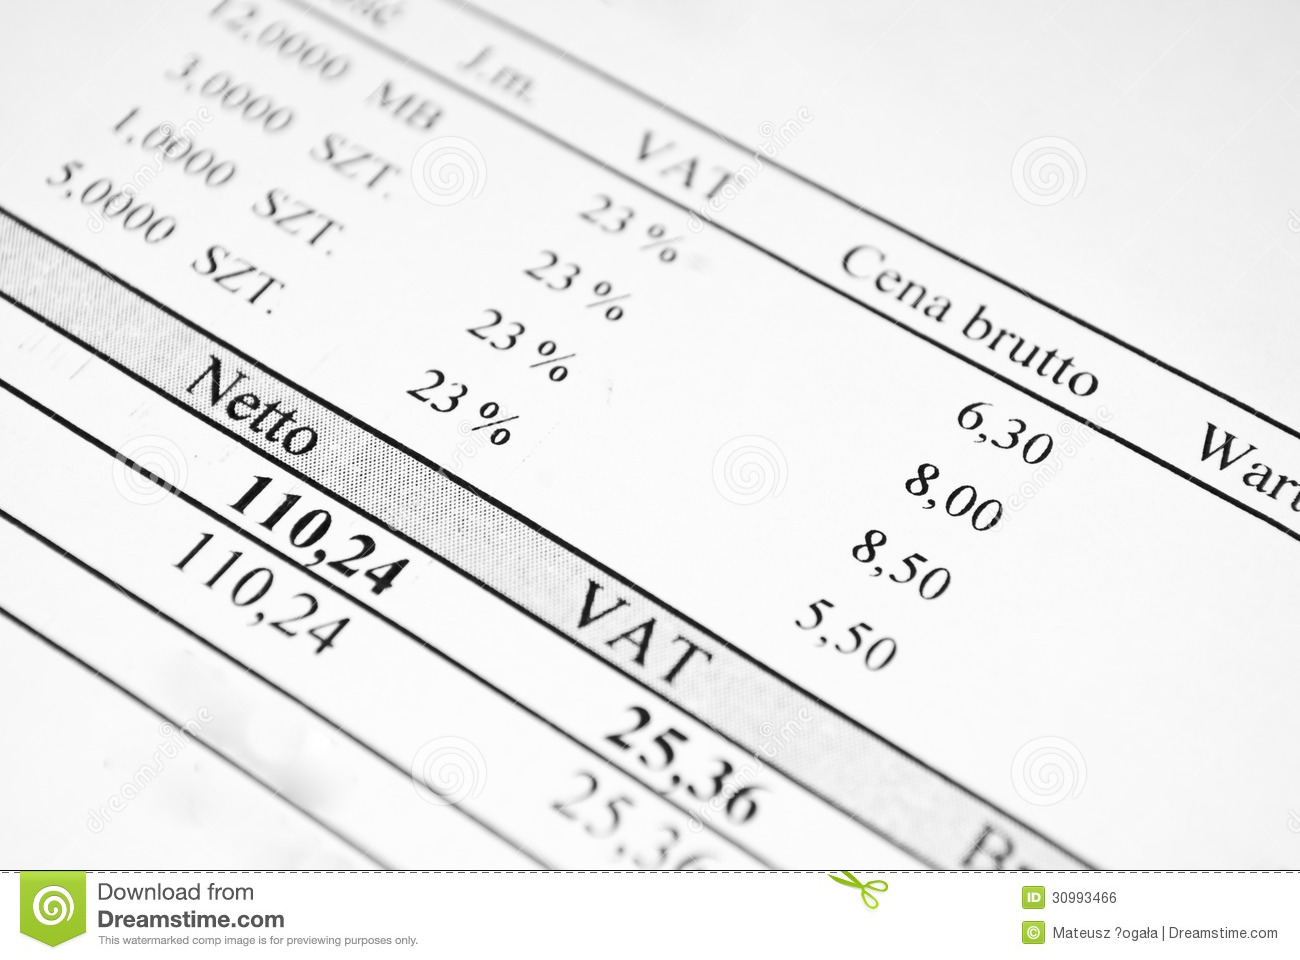 Chicken Breast Receipt Word Invoice Sheet With Prices And Tax Royalty Free Stock Image  Image  Apple Crumble Receipt Word with Stock Receipt Royaltyfree Stock Photo Download Invoice  Bmw Invoice Pricing Word